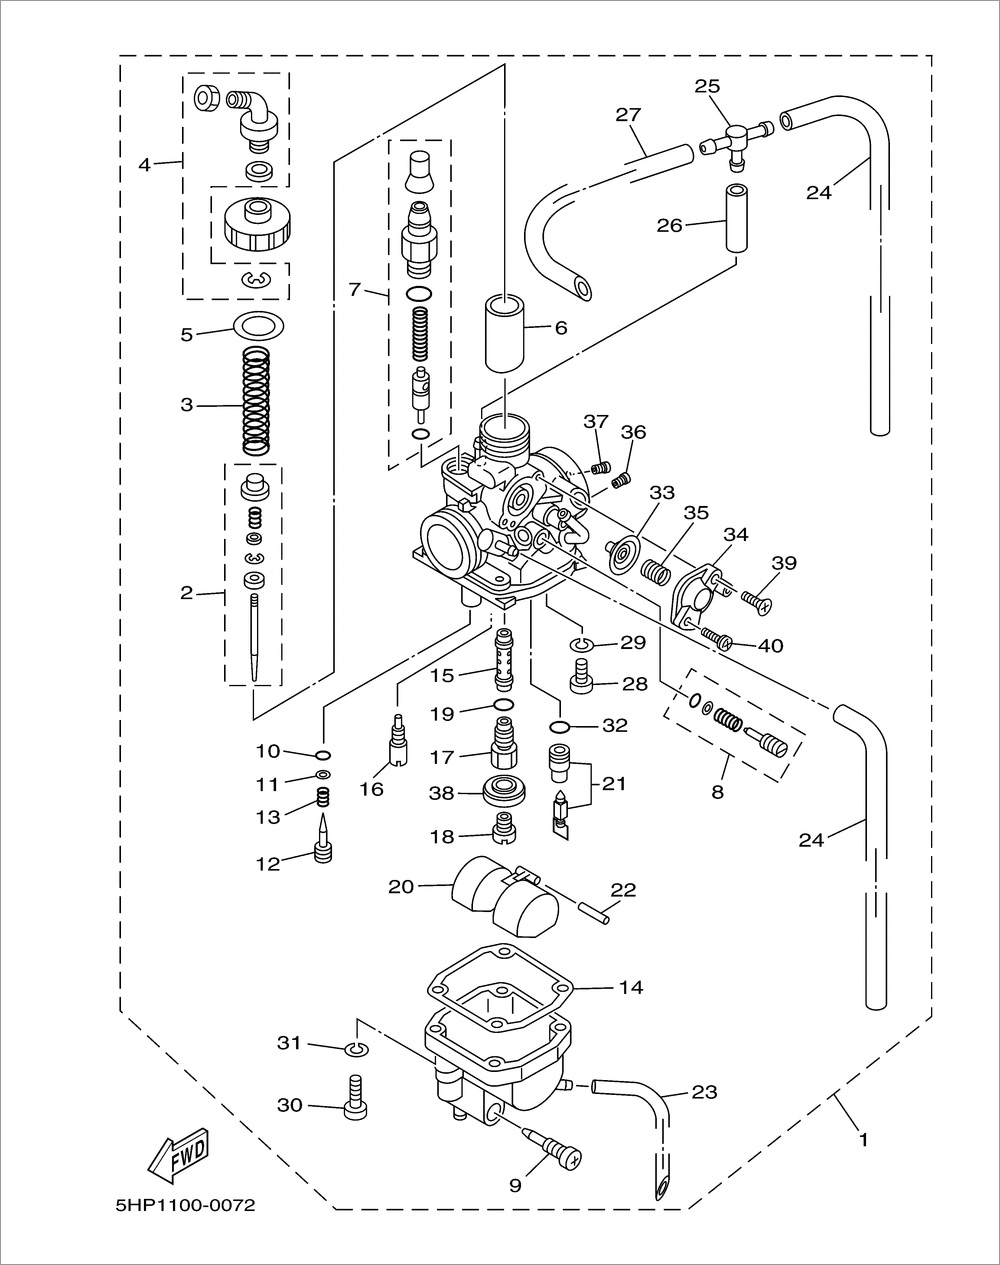 2005 ttr 125 wiring diagram